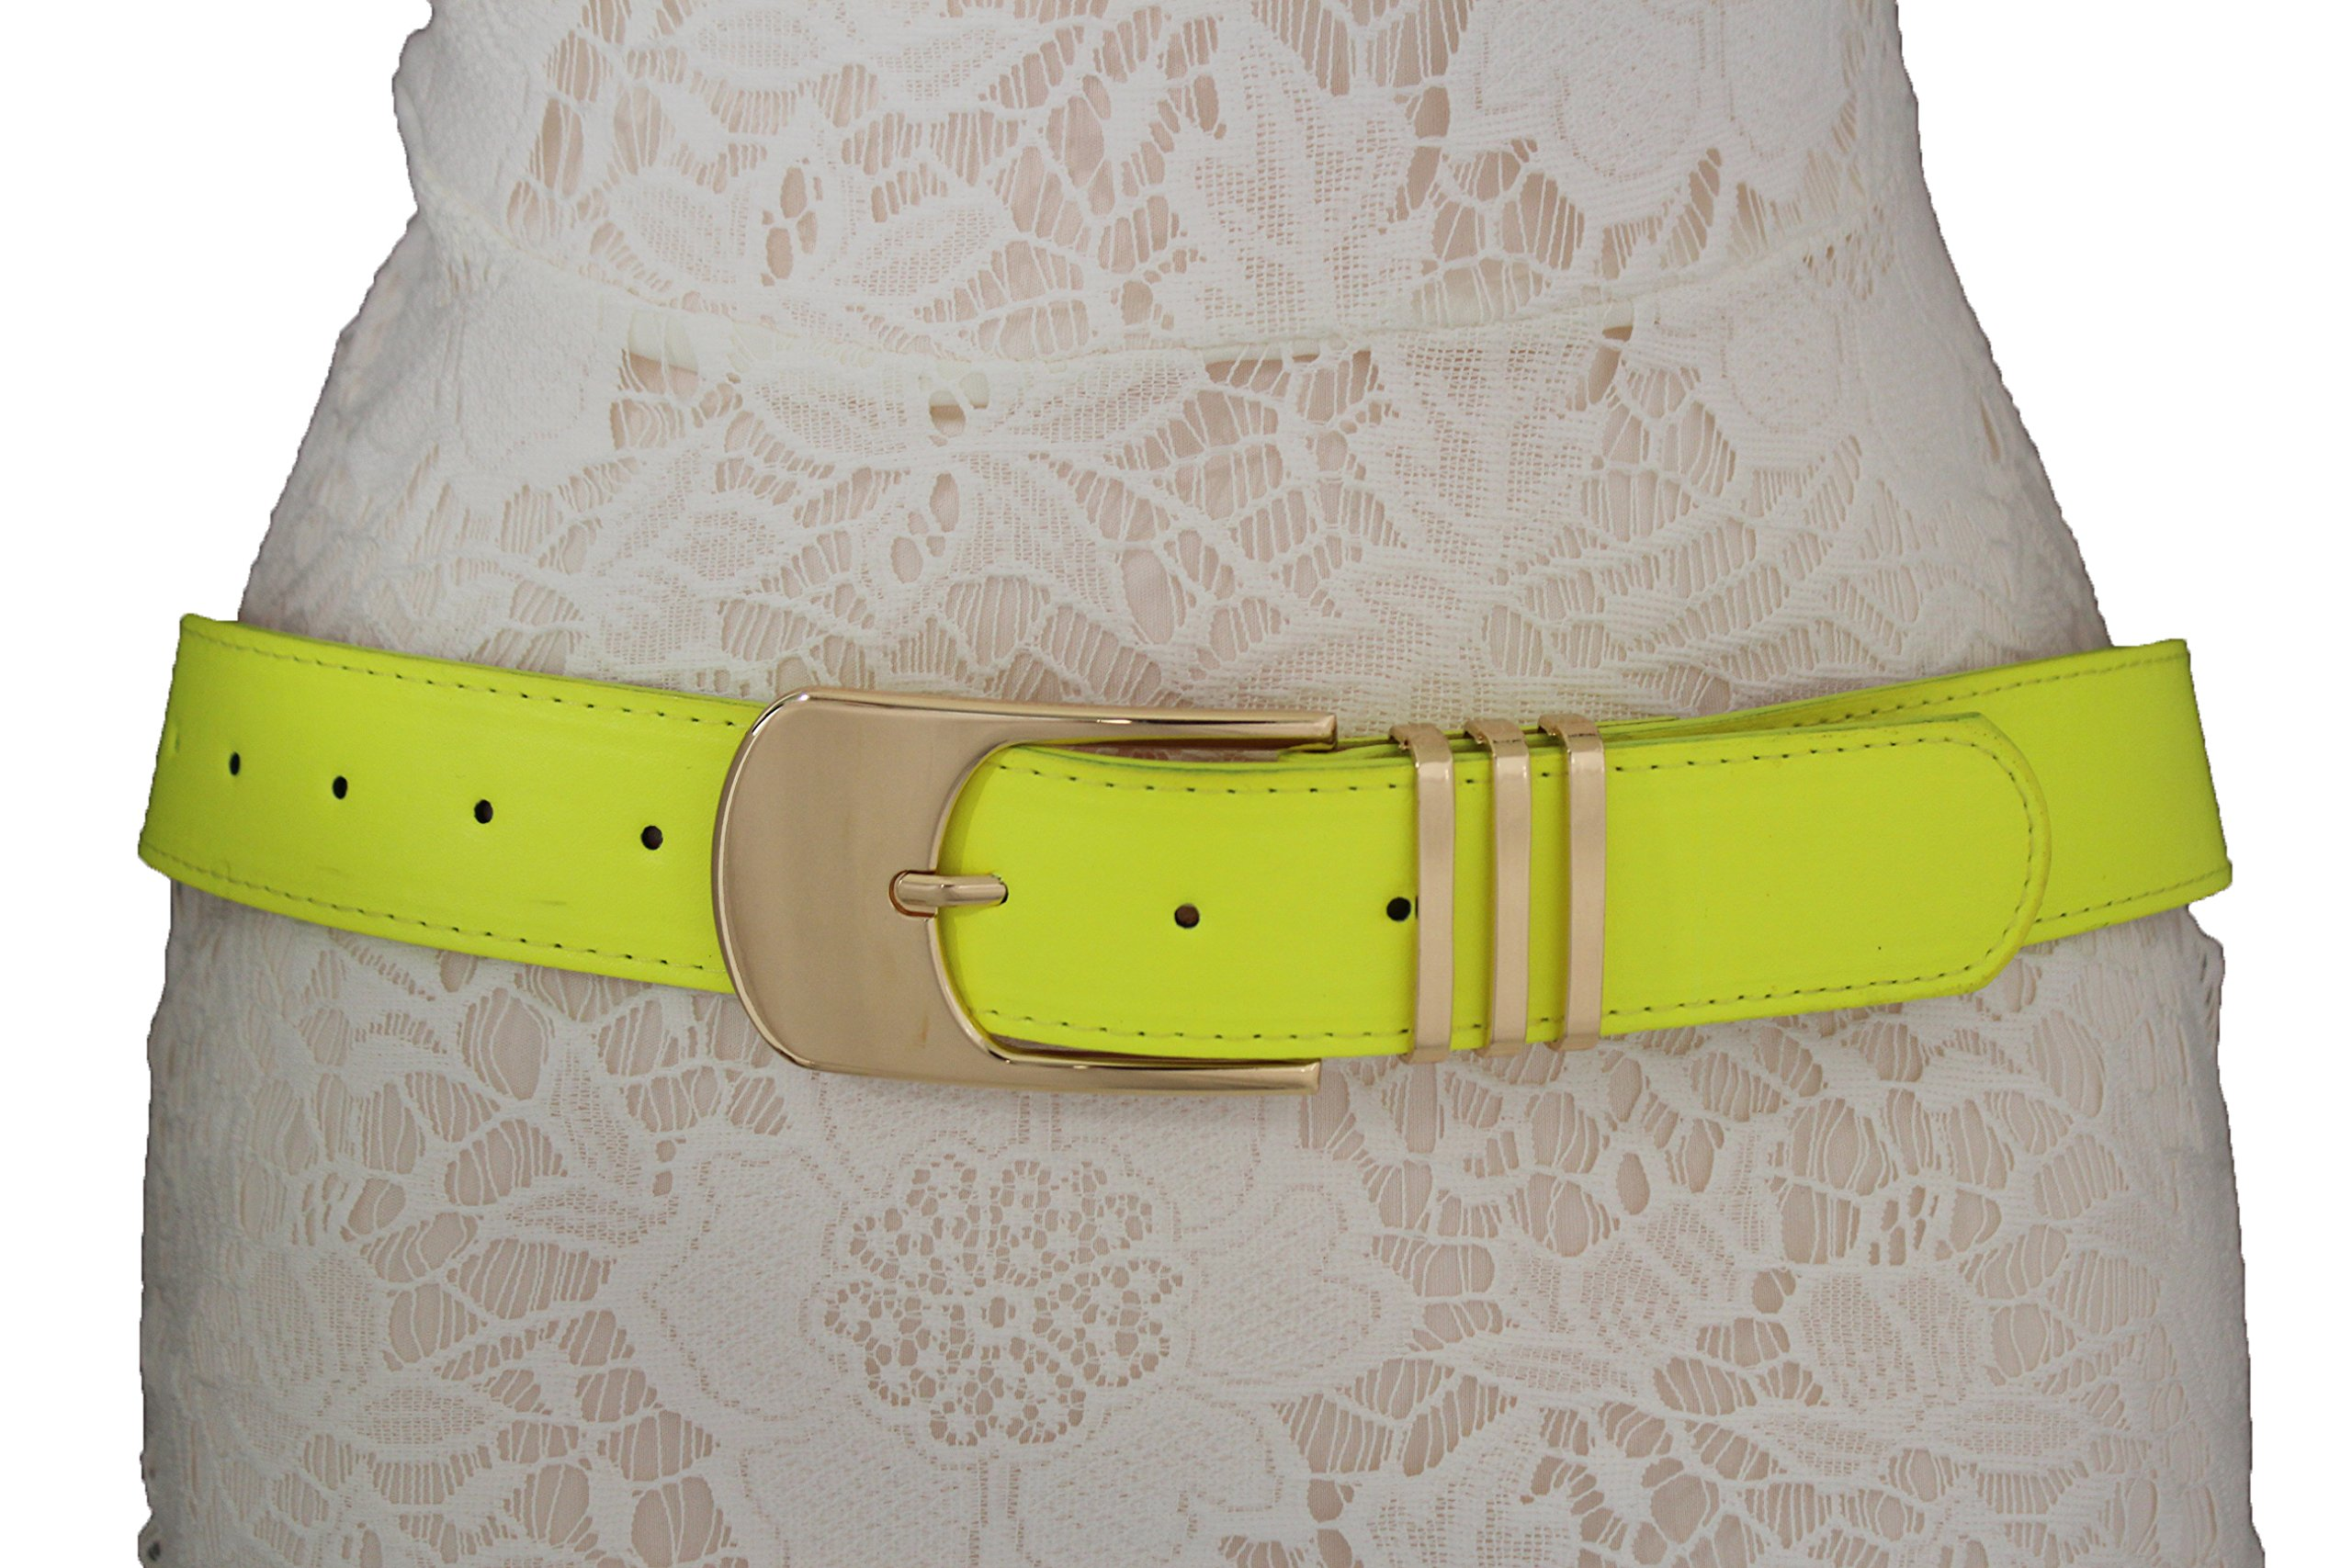 TFJ Women Classic Fashion Belt Faux Leather Big Gold Metal Buckle Plus Size M L Xl (Bright yellow)